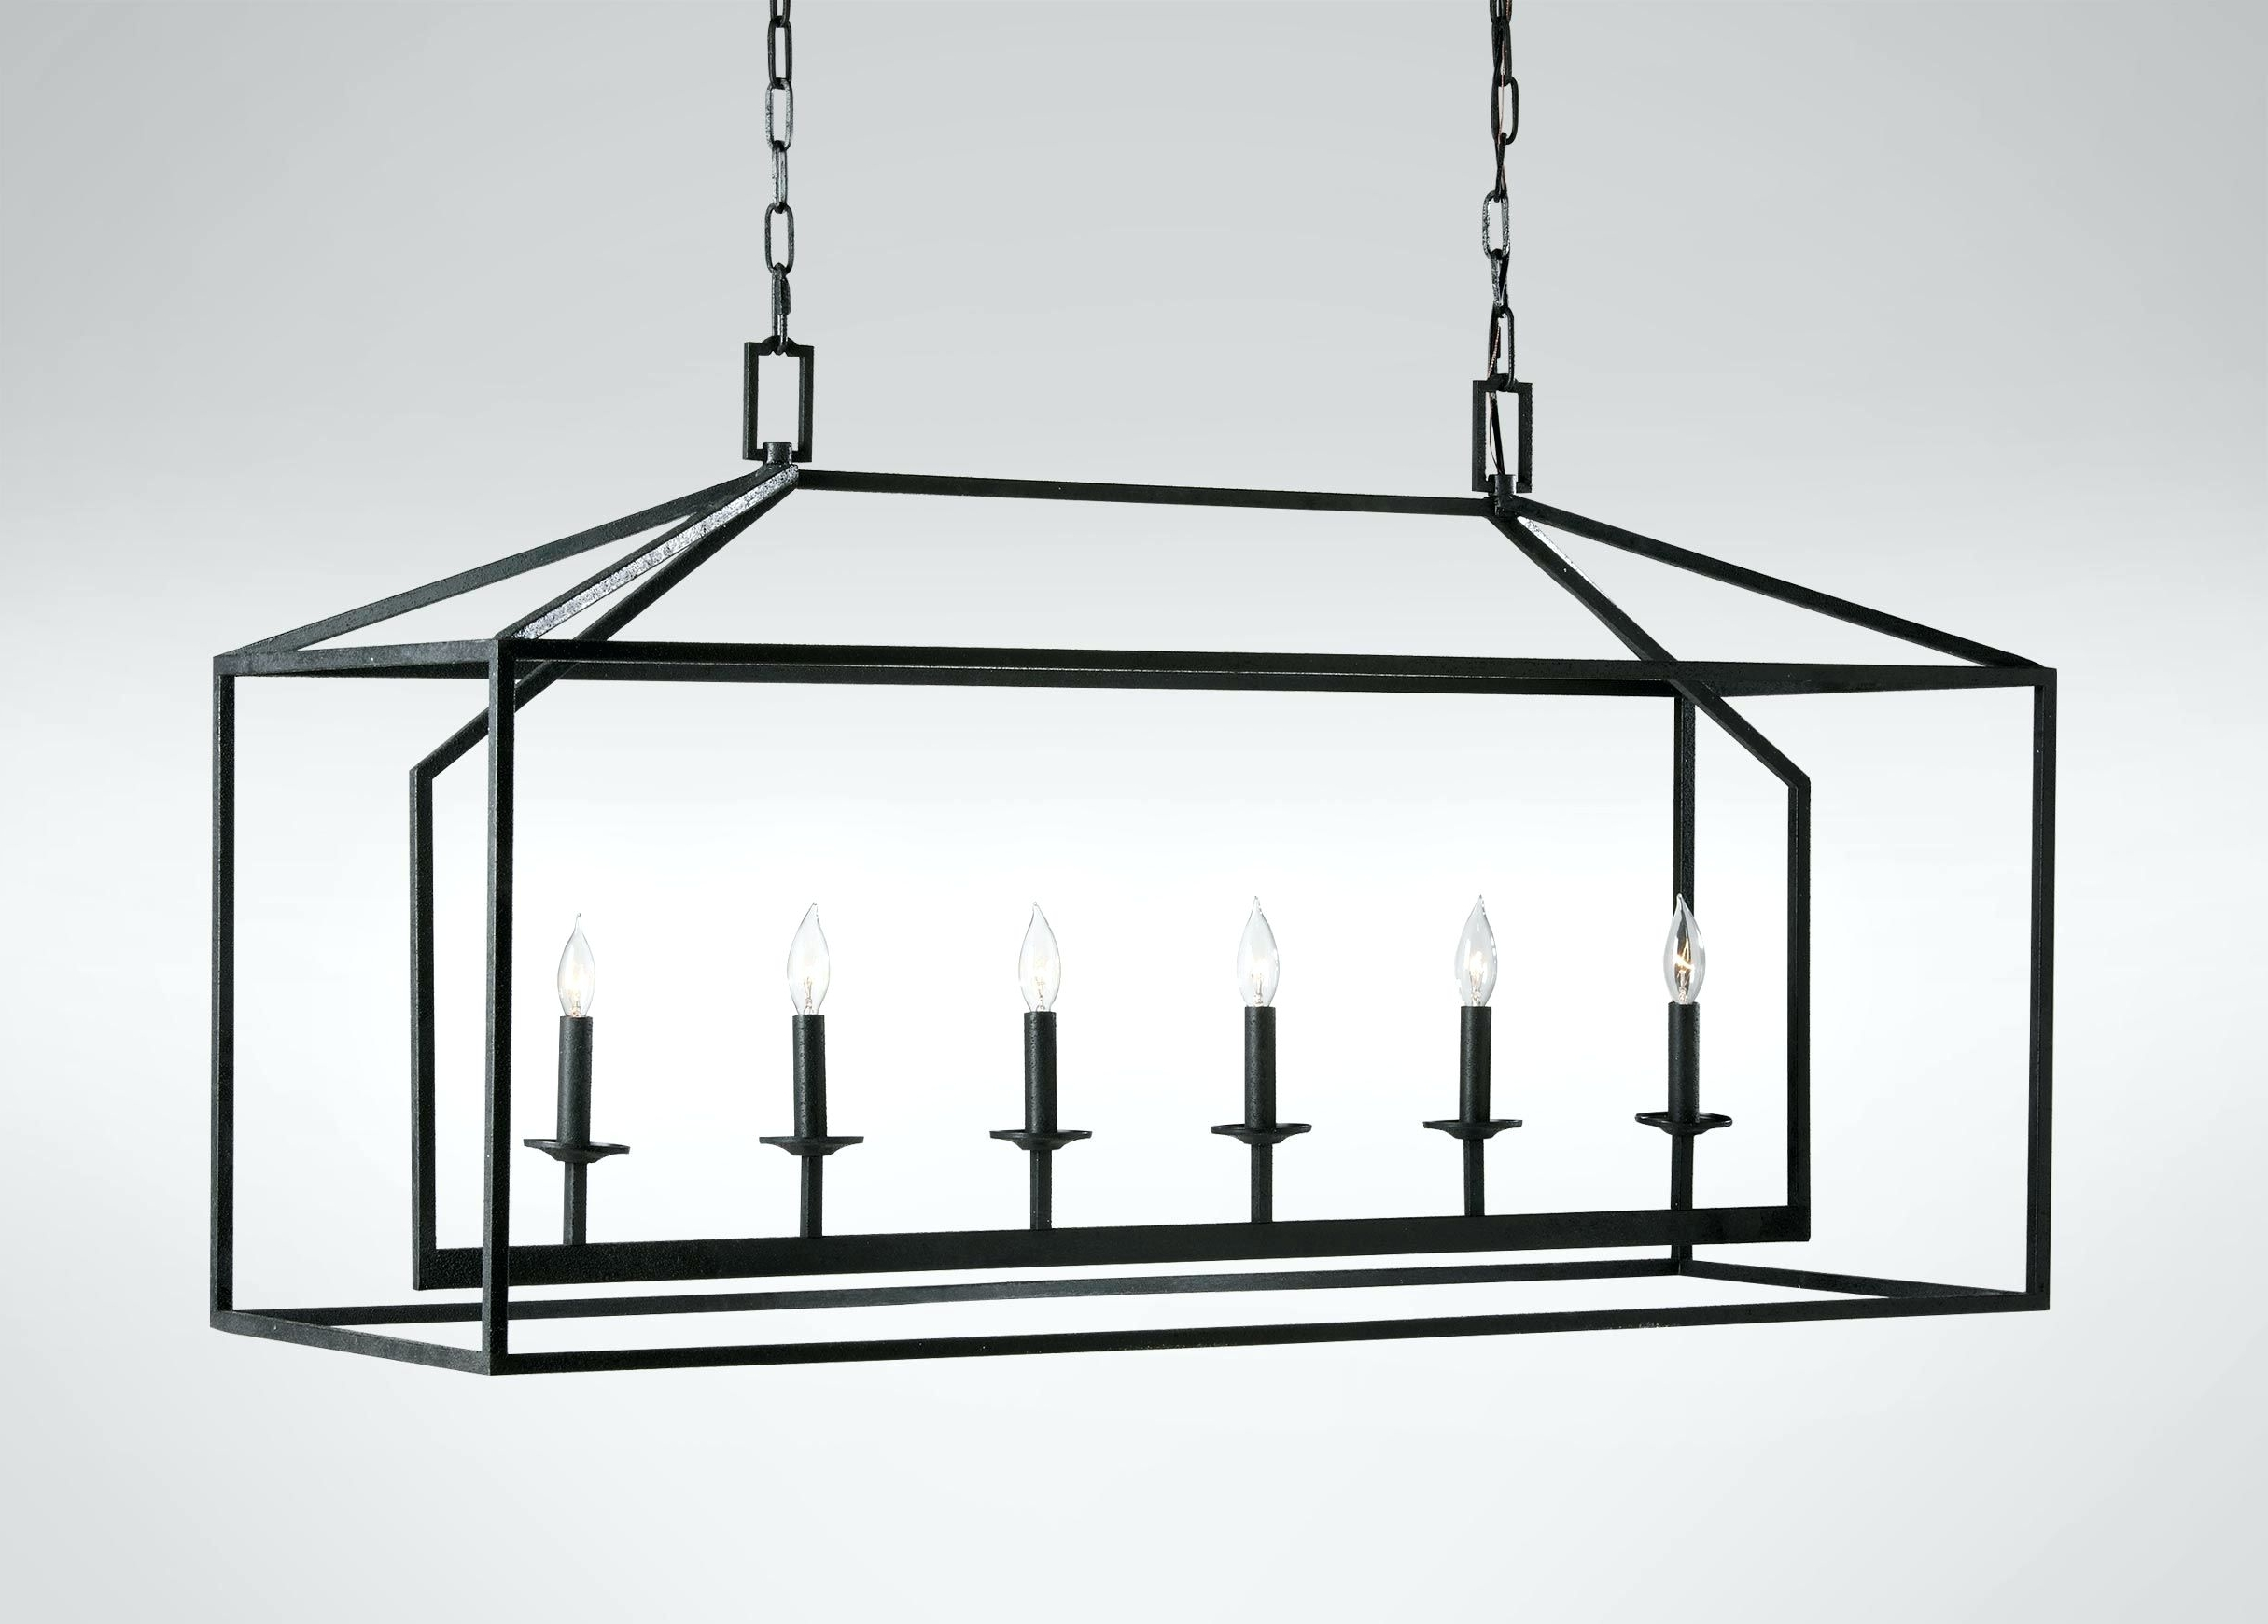 Indoor Lantern Chandelier With Regard To Best And Newest Chandeliers Design : Marvelous Black Iron Lantern Chandelier Current (Gallery 6 of 20)